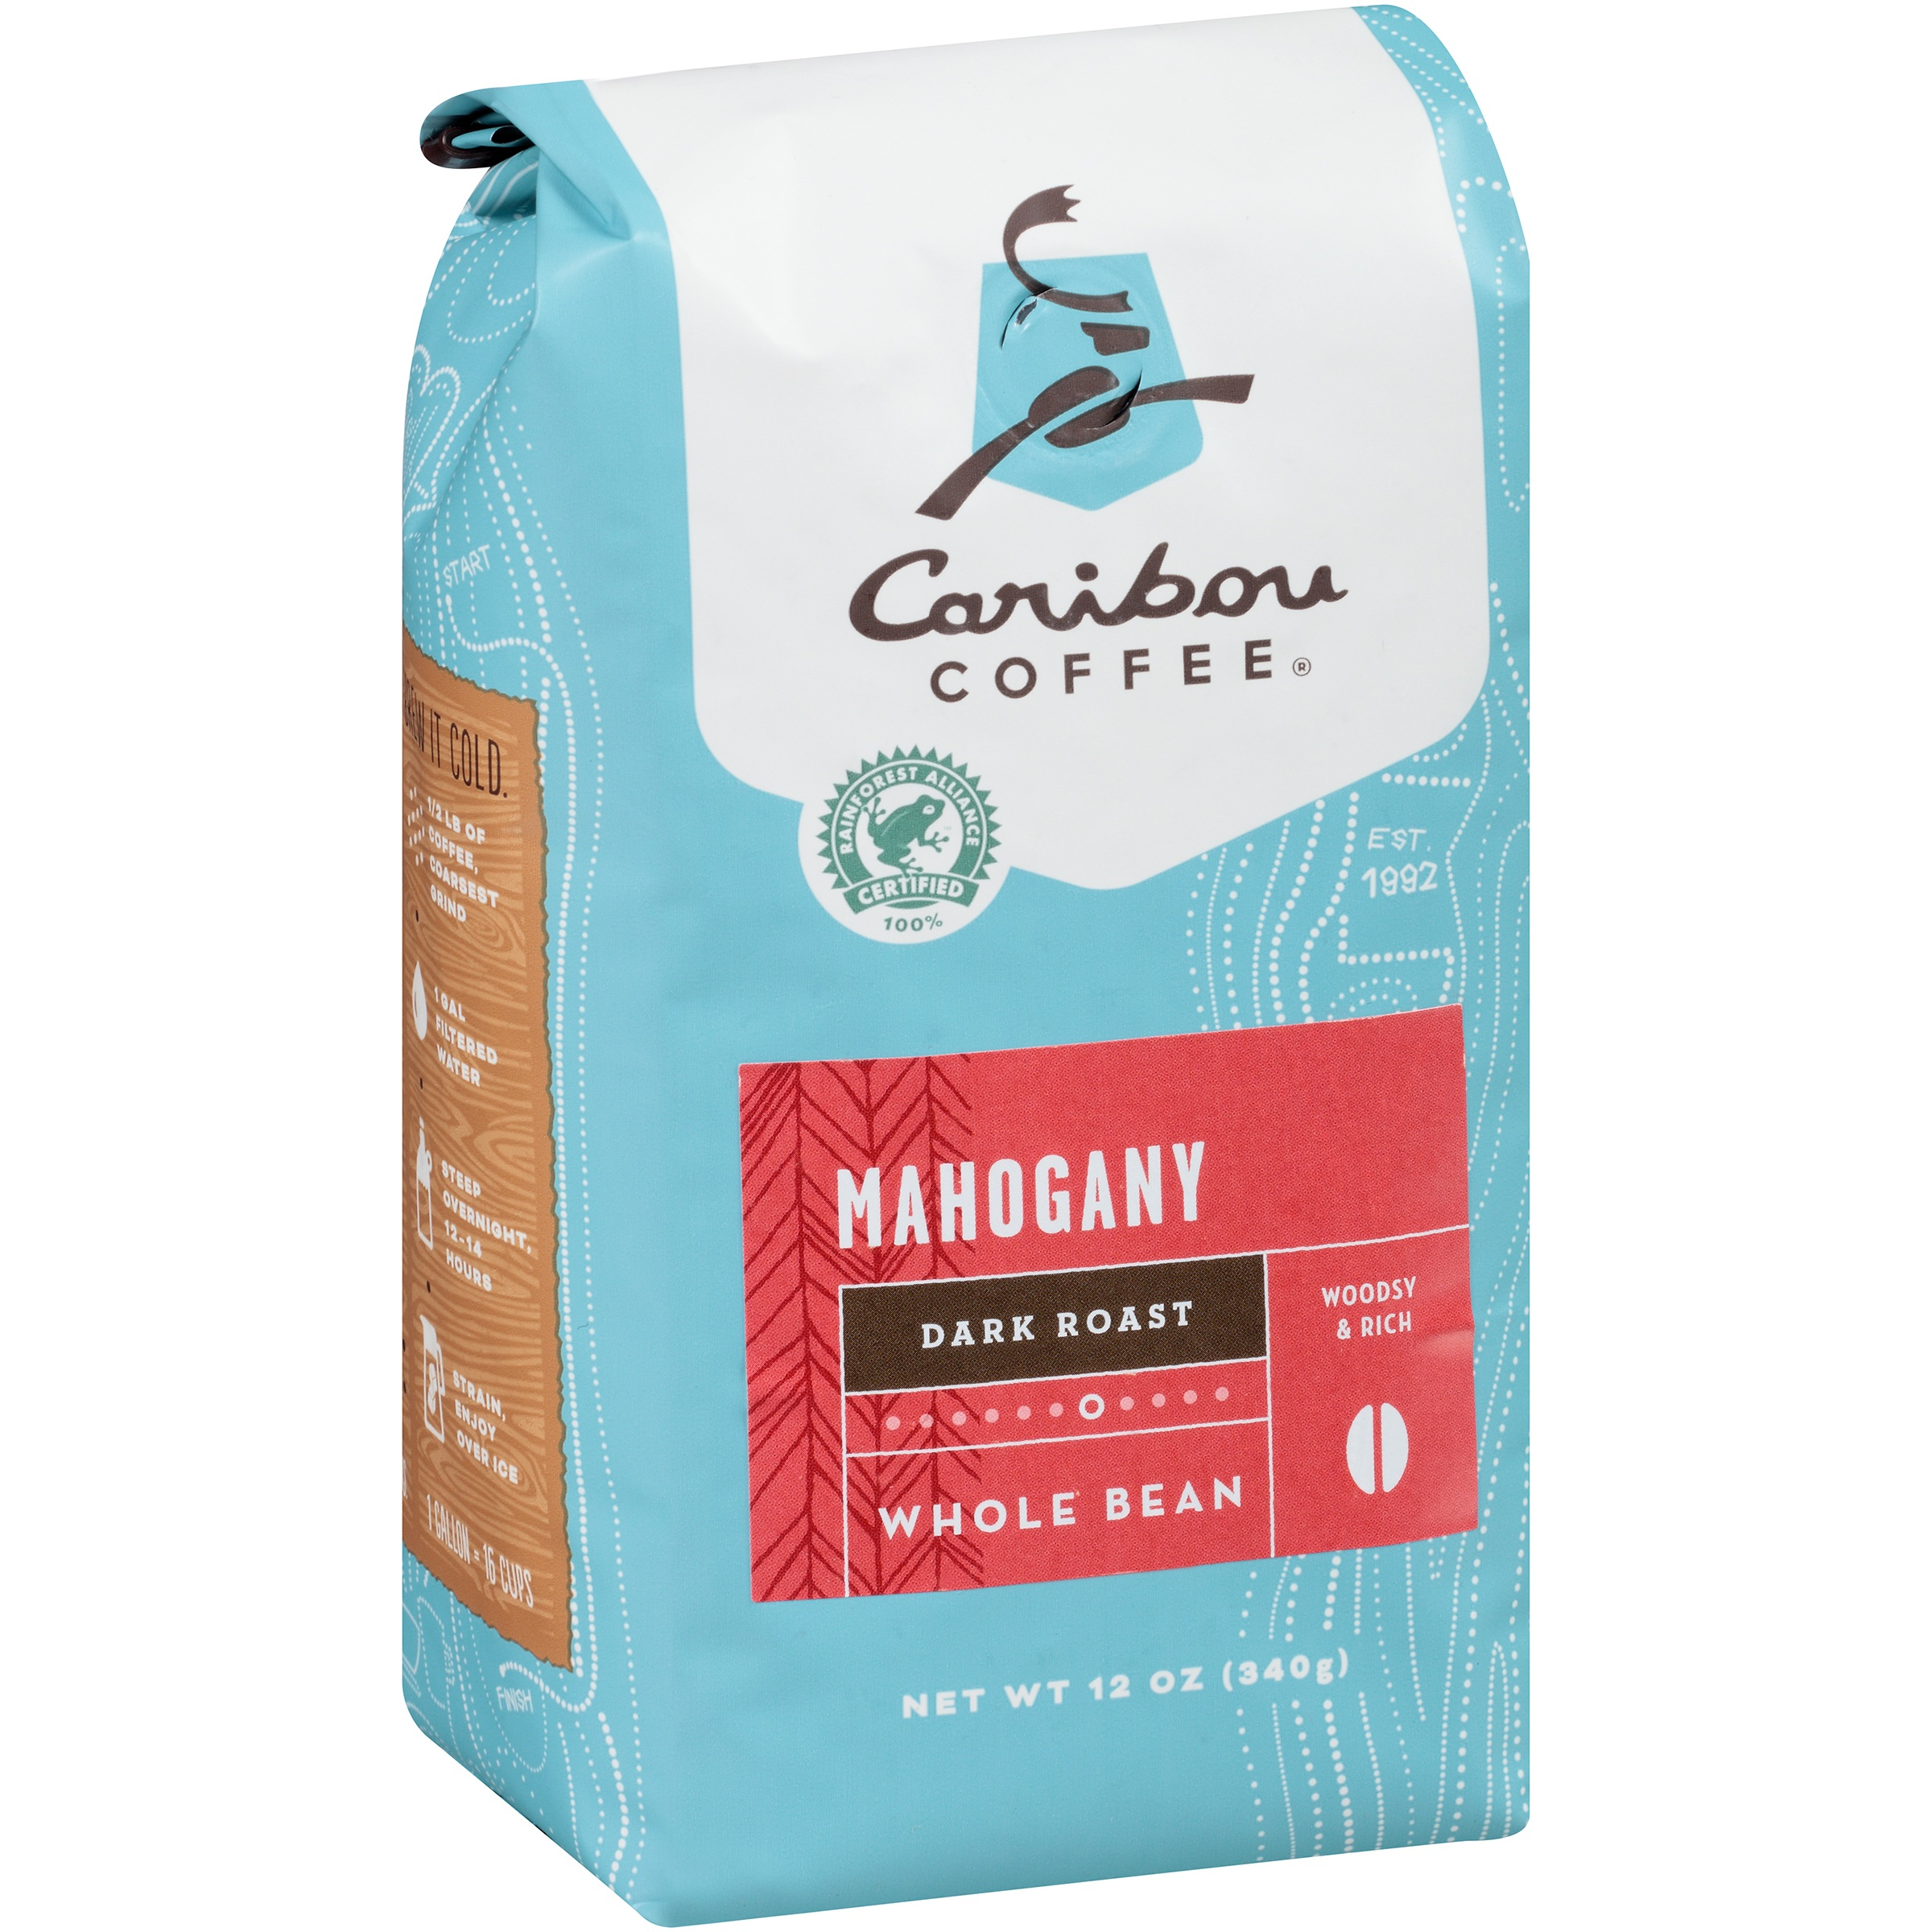 Caribou Coffee Mahogany Dark Roast Whole Bean, 12 oz